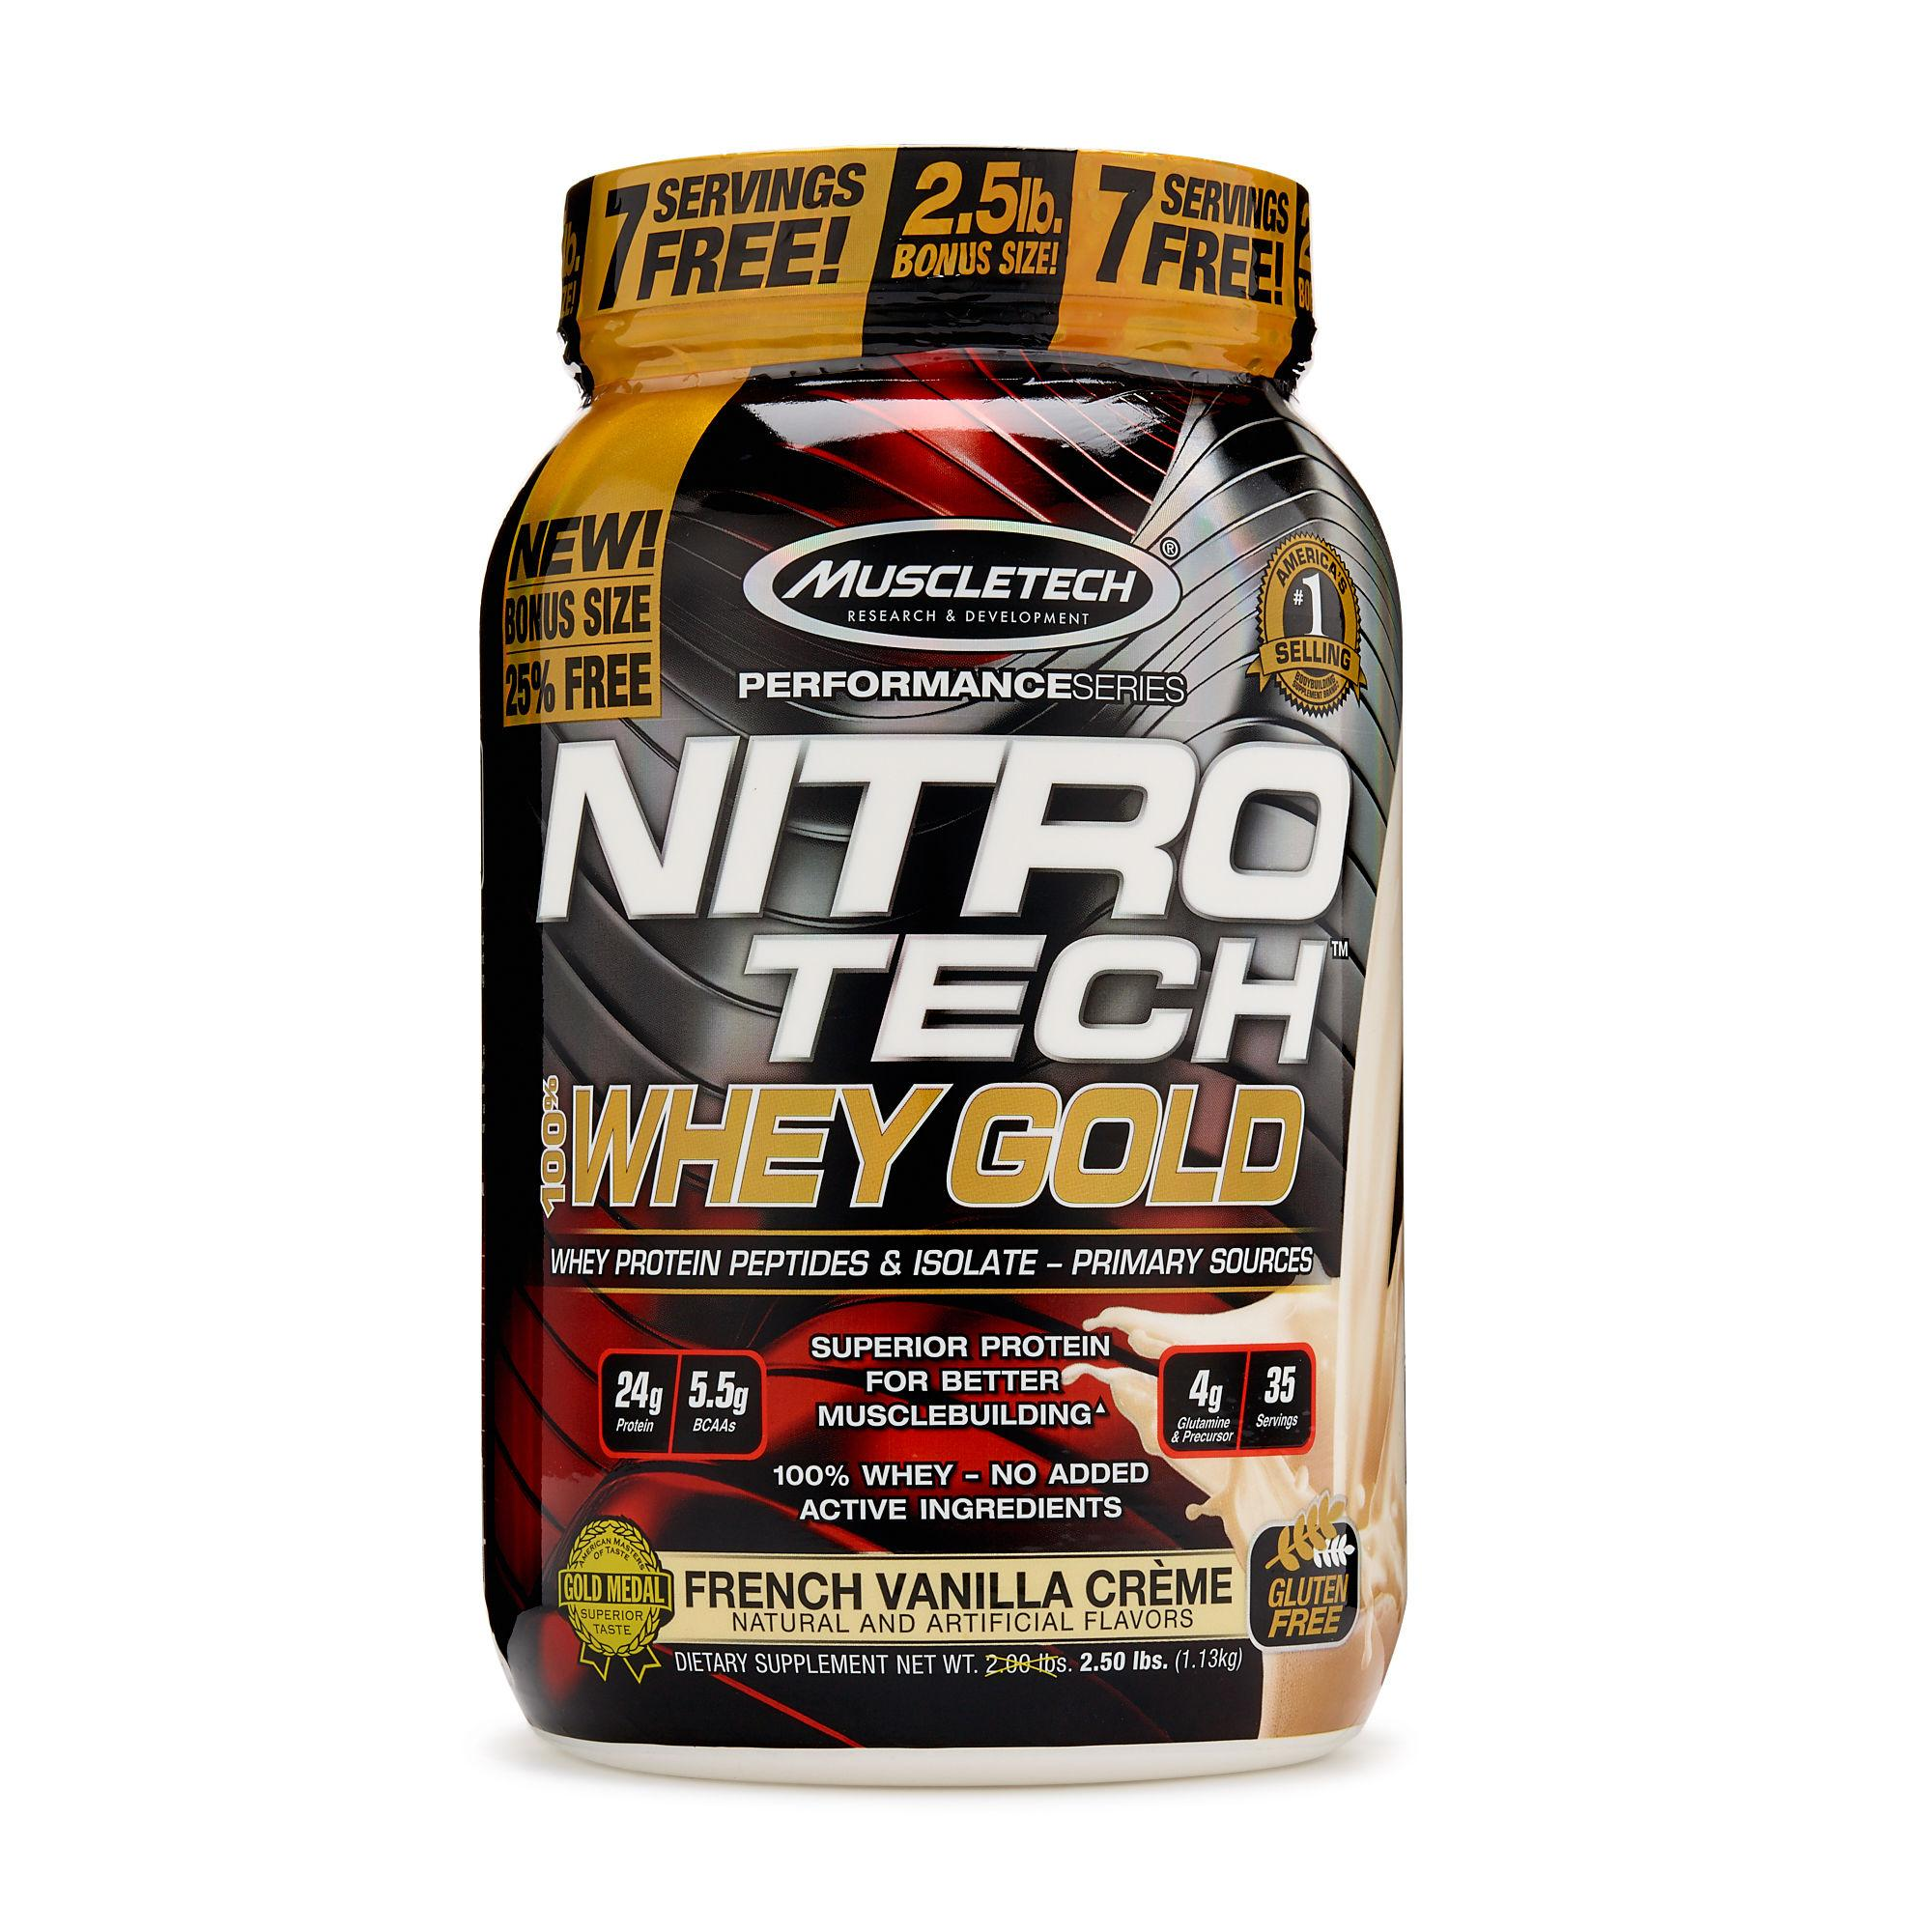 Buy Sell Cheapest Nitrotech 100 Whey Best Quality Product Deals Muscletech Performance Series 4 Lbs Perfseries Gold 25lbs French Vanilla Creme